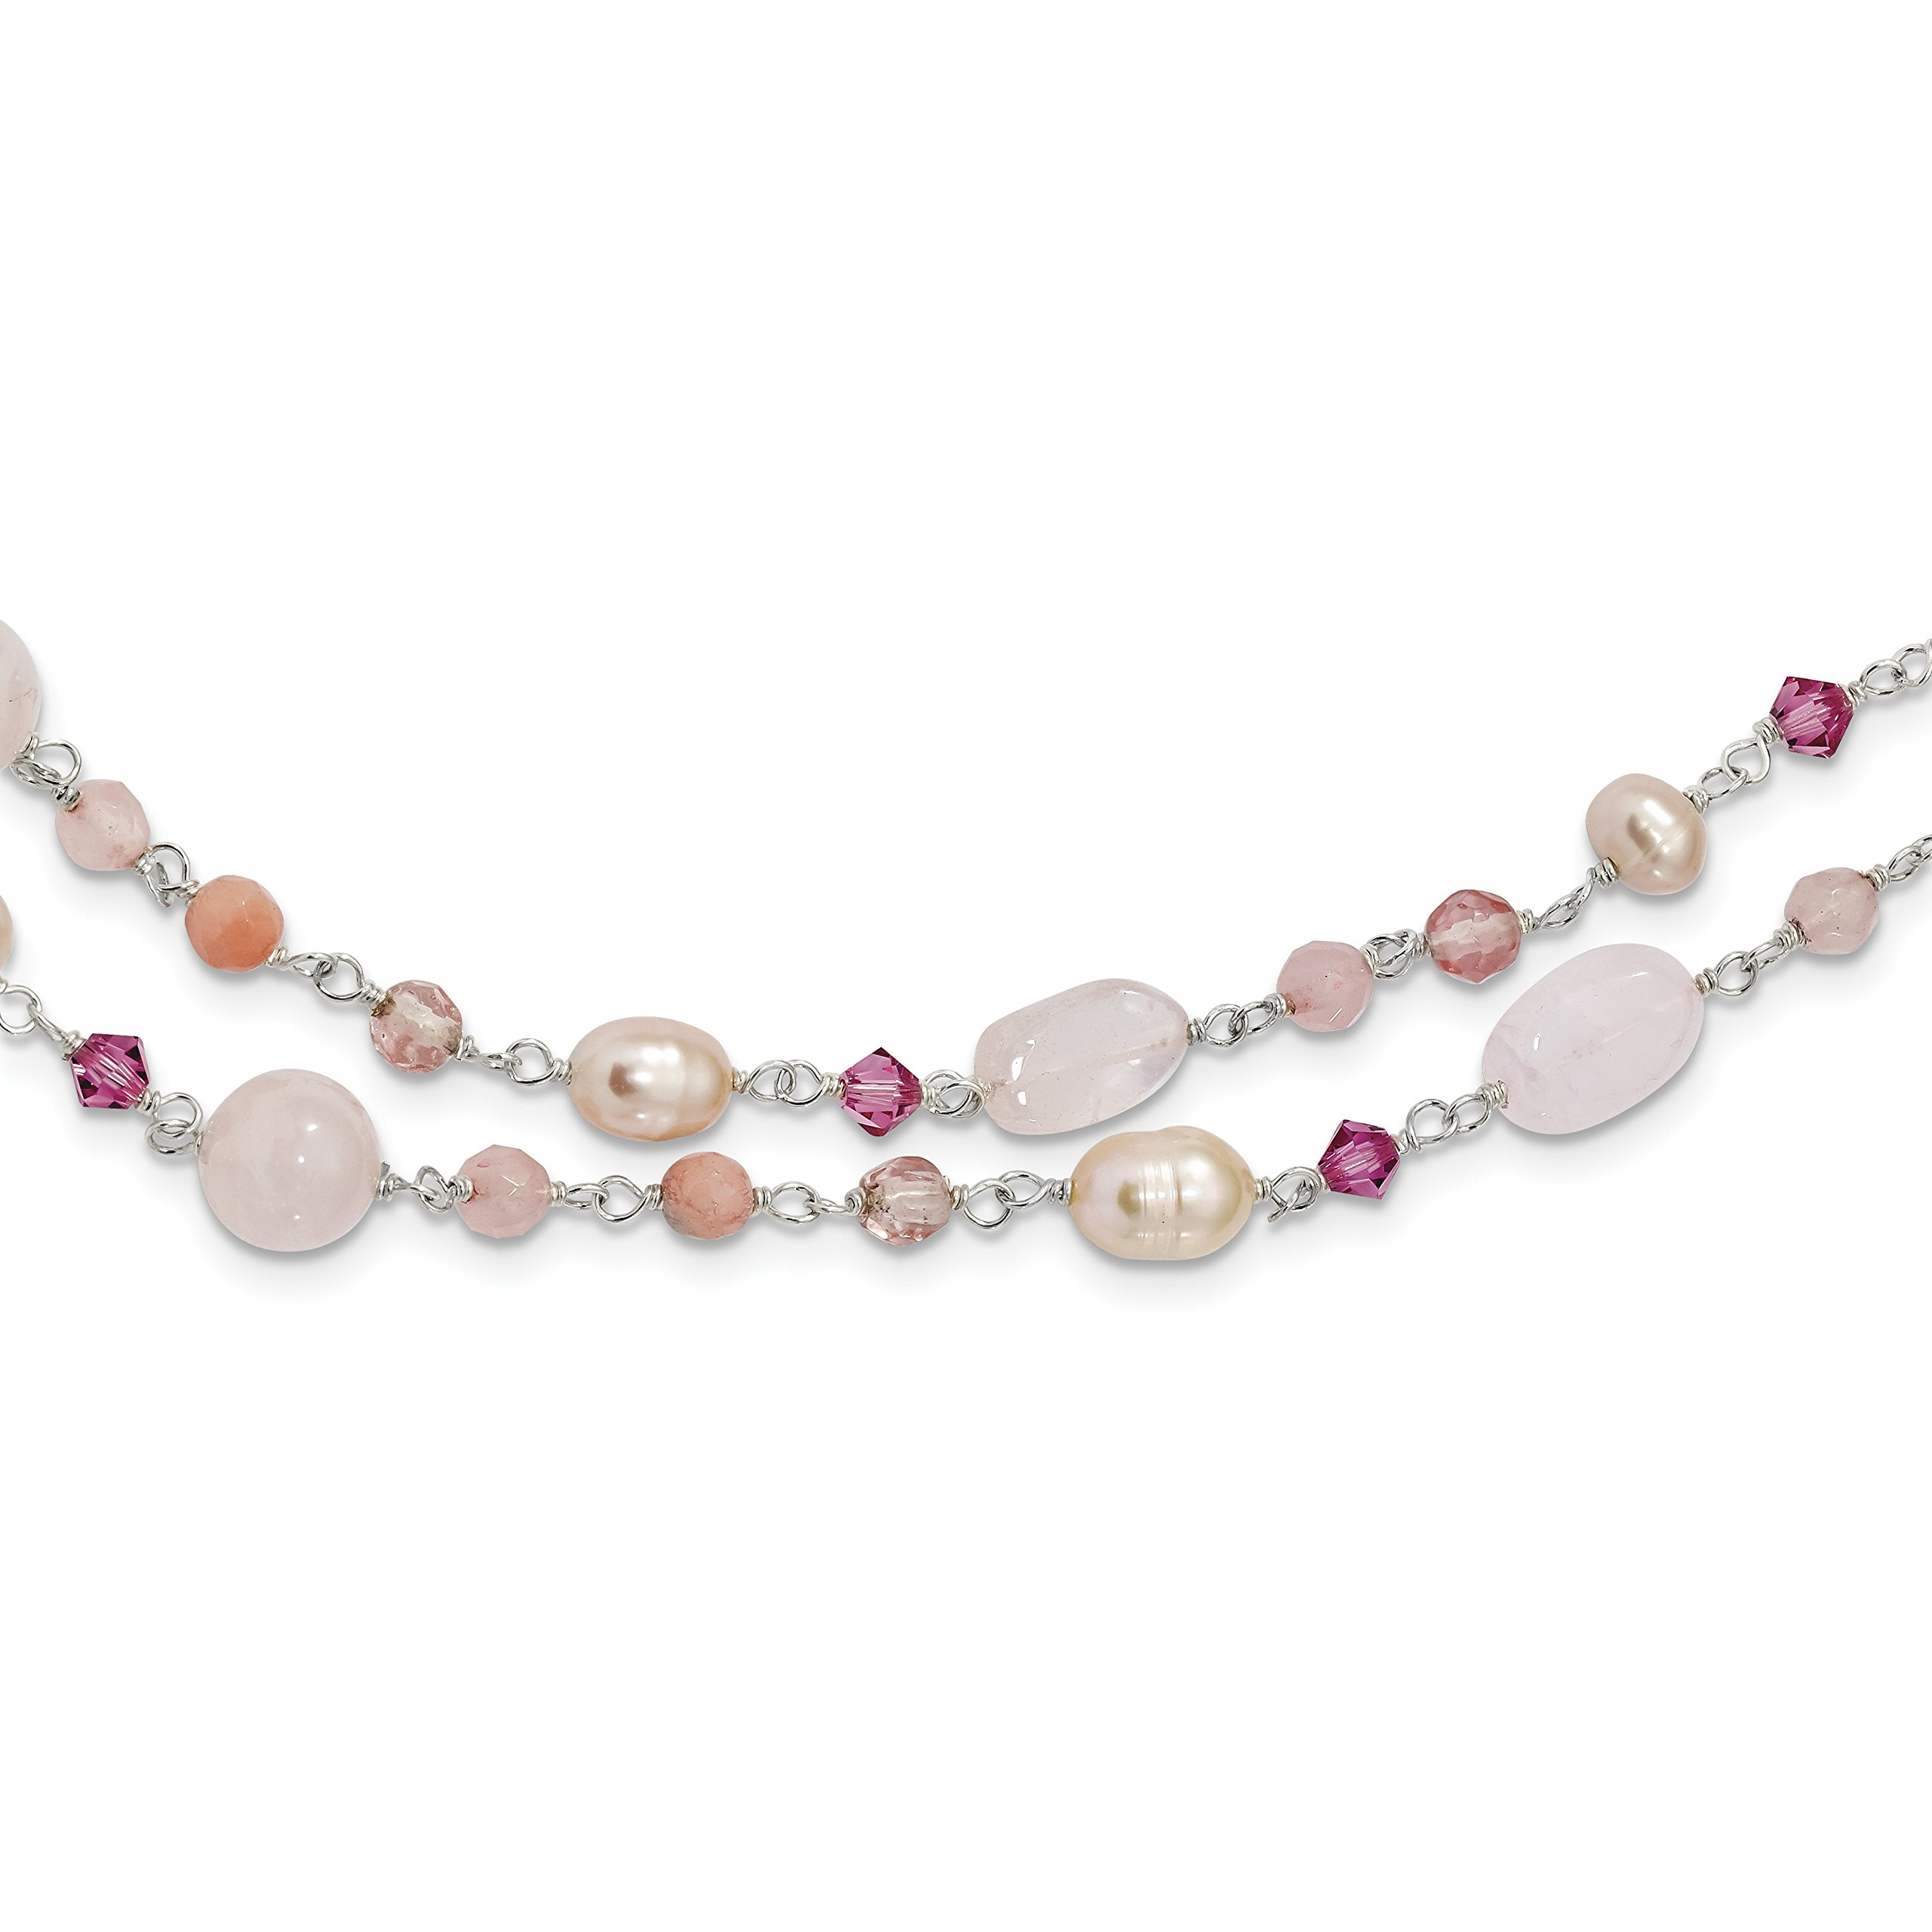 ICE CARATS 925 Sterling Silver Pink Freshwater Culturedultpearl/cherry Rose Quartz/peach Jade/rosaline Chain Necklace Pearl Natural Stone Fine Jewelry Gift Set For Women Heart